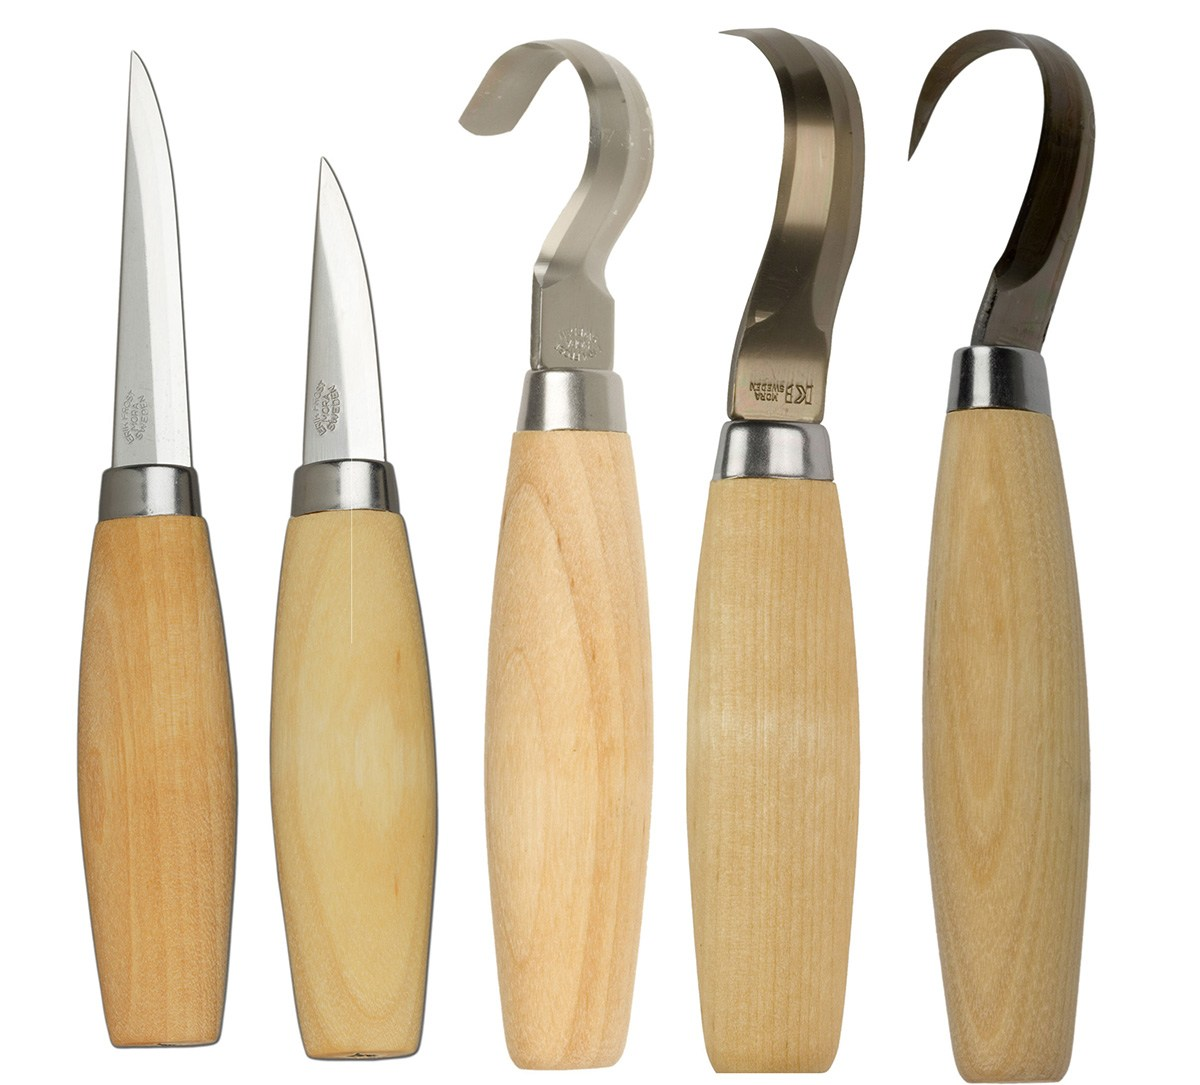 Cws store mora set of spoon carving knives